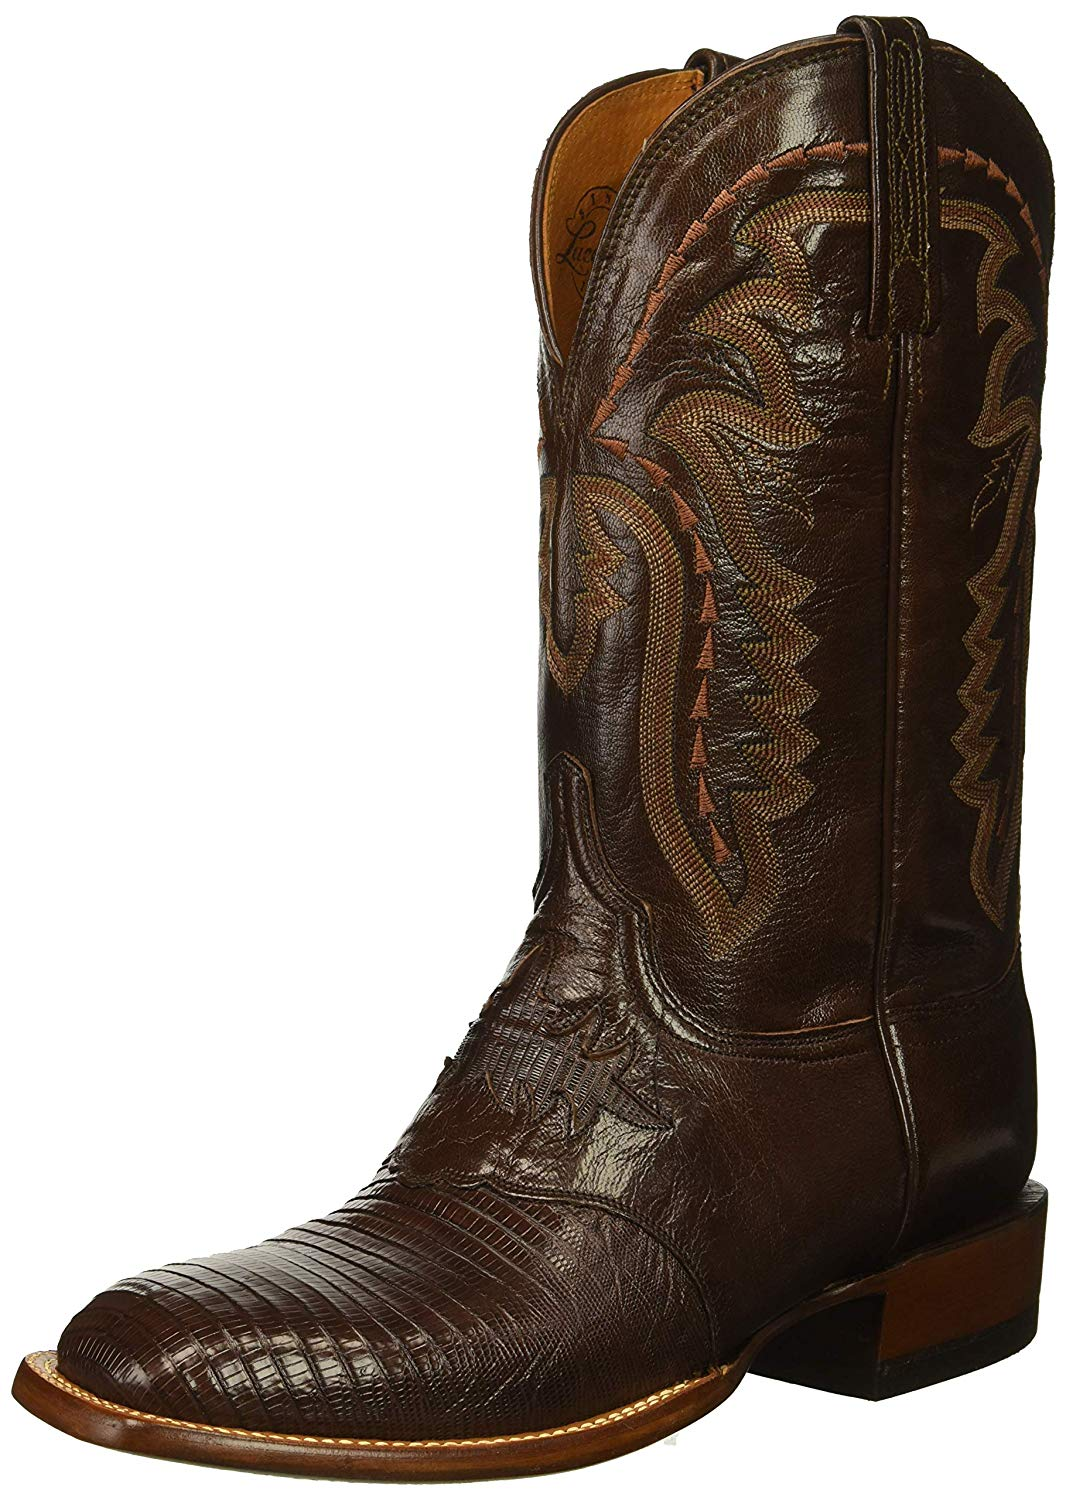 Lucchese Bootmaker Men's Limited Edition Western Boot